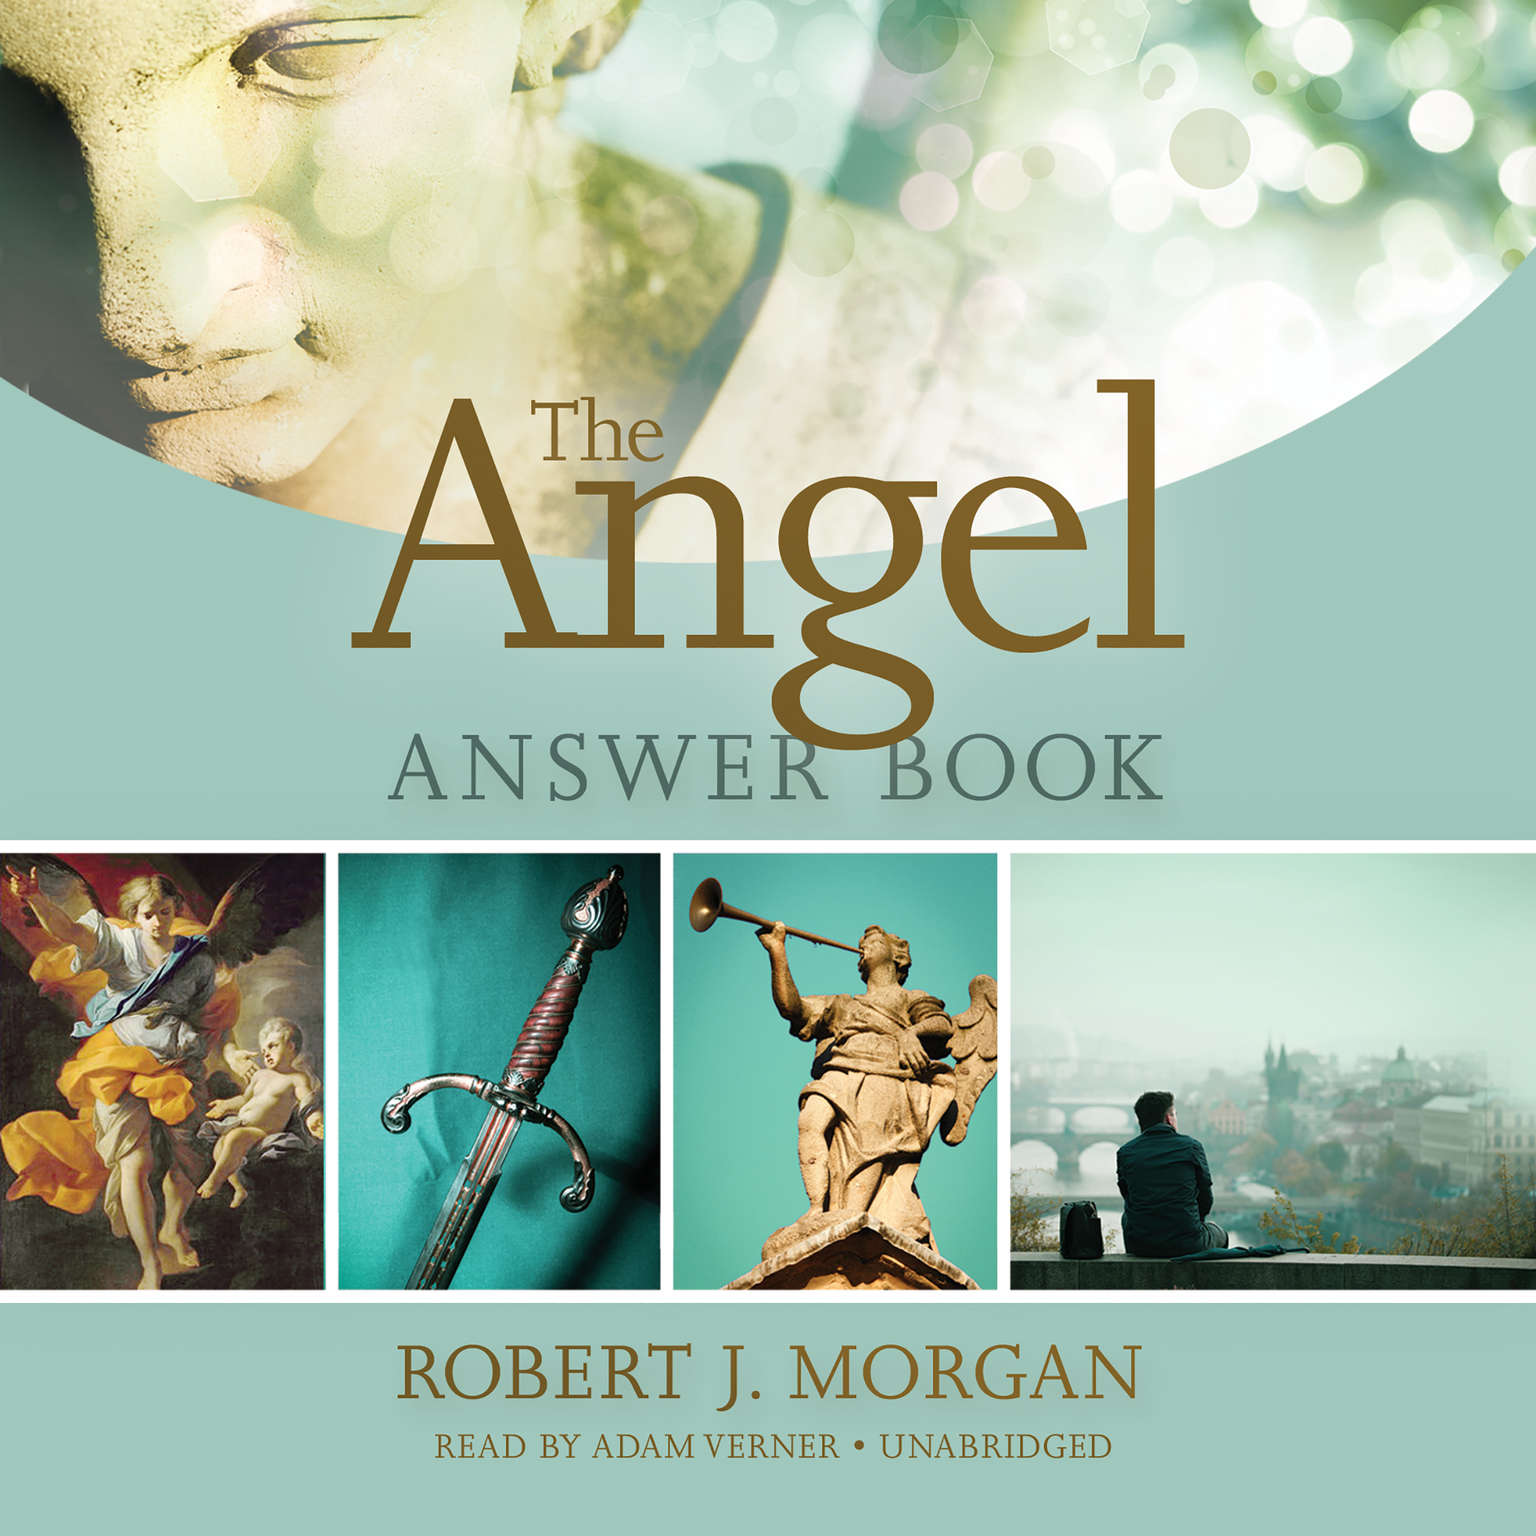 The Angel Answer Book Audiobook, by Robert J. Morgan